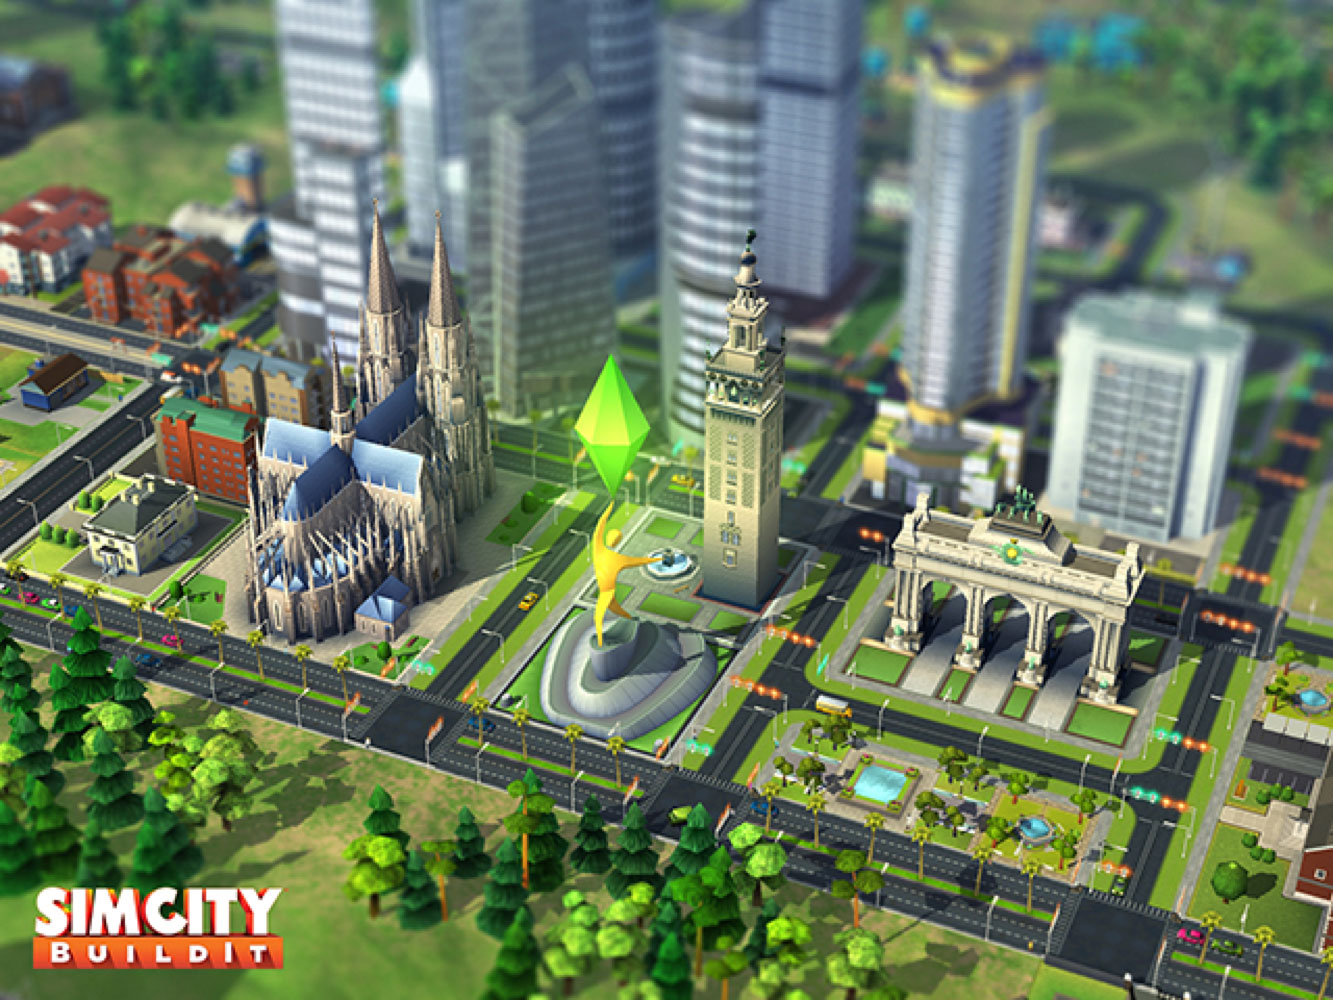 SimCity BuildIt 2015 Infographic